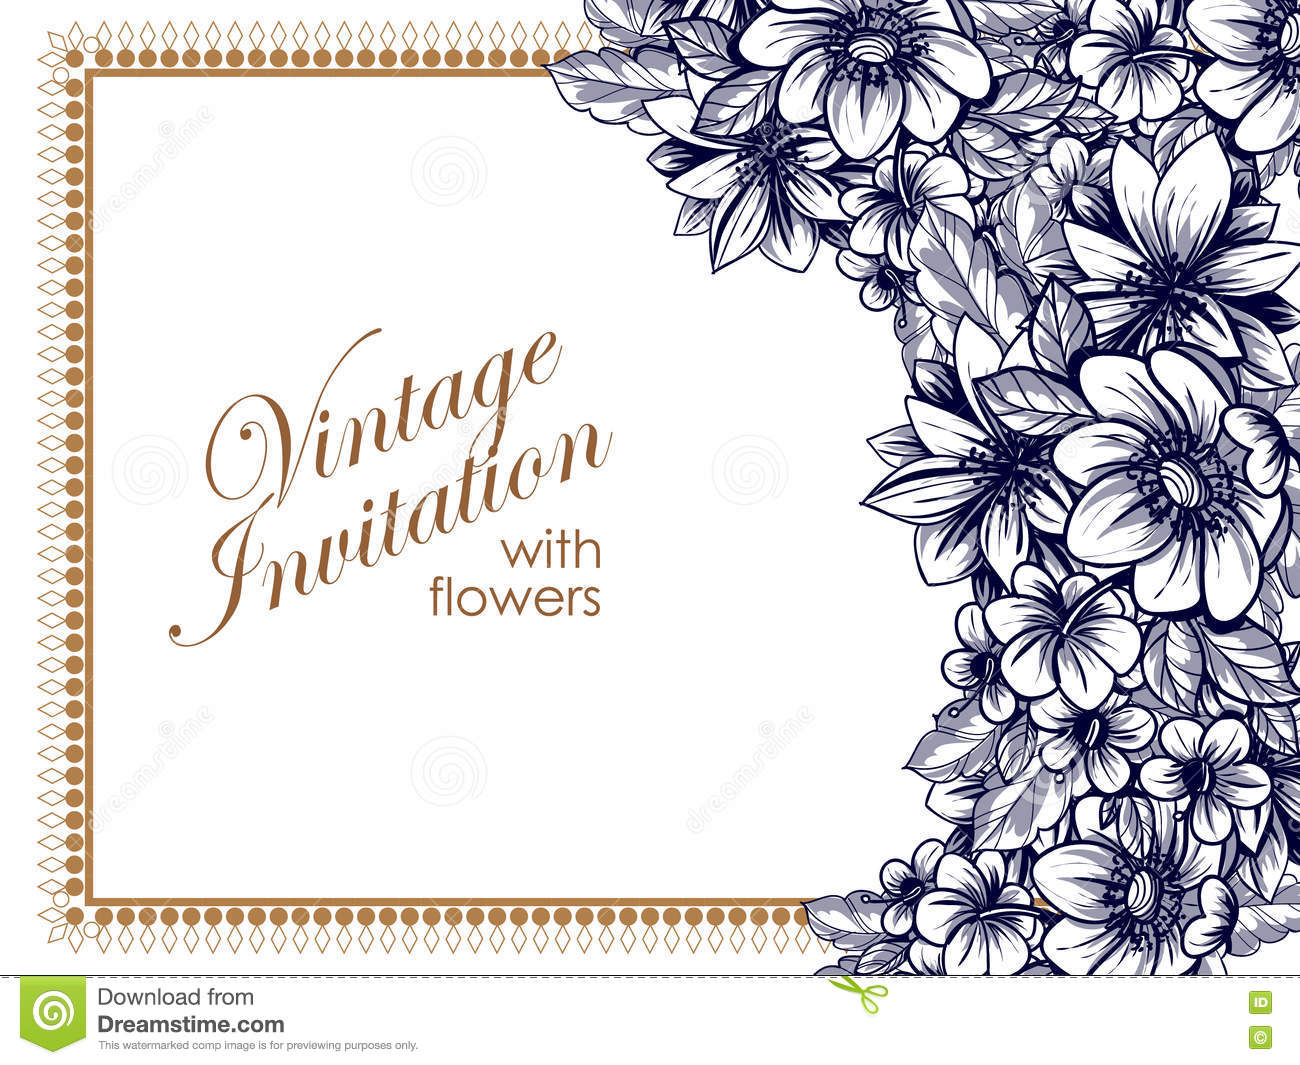 Abstract elegance invitation with floral background